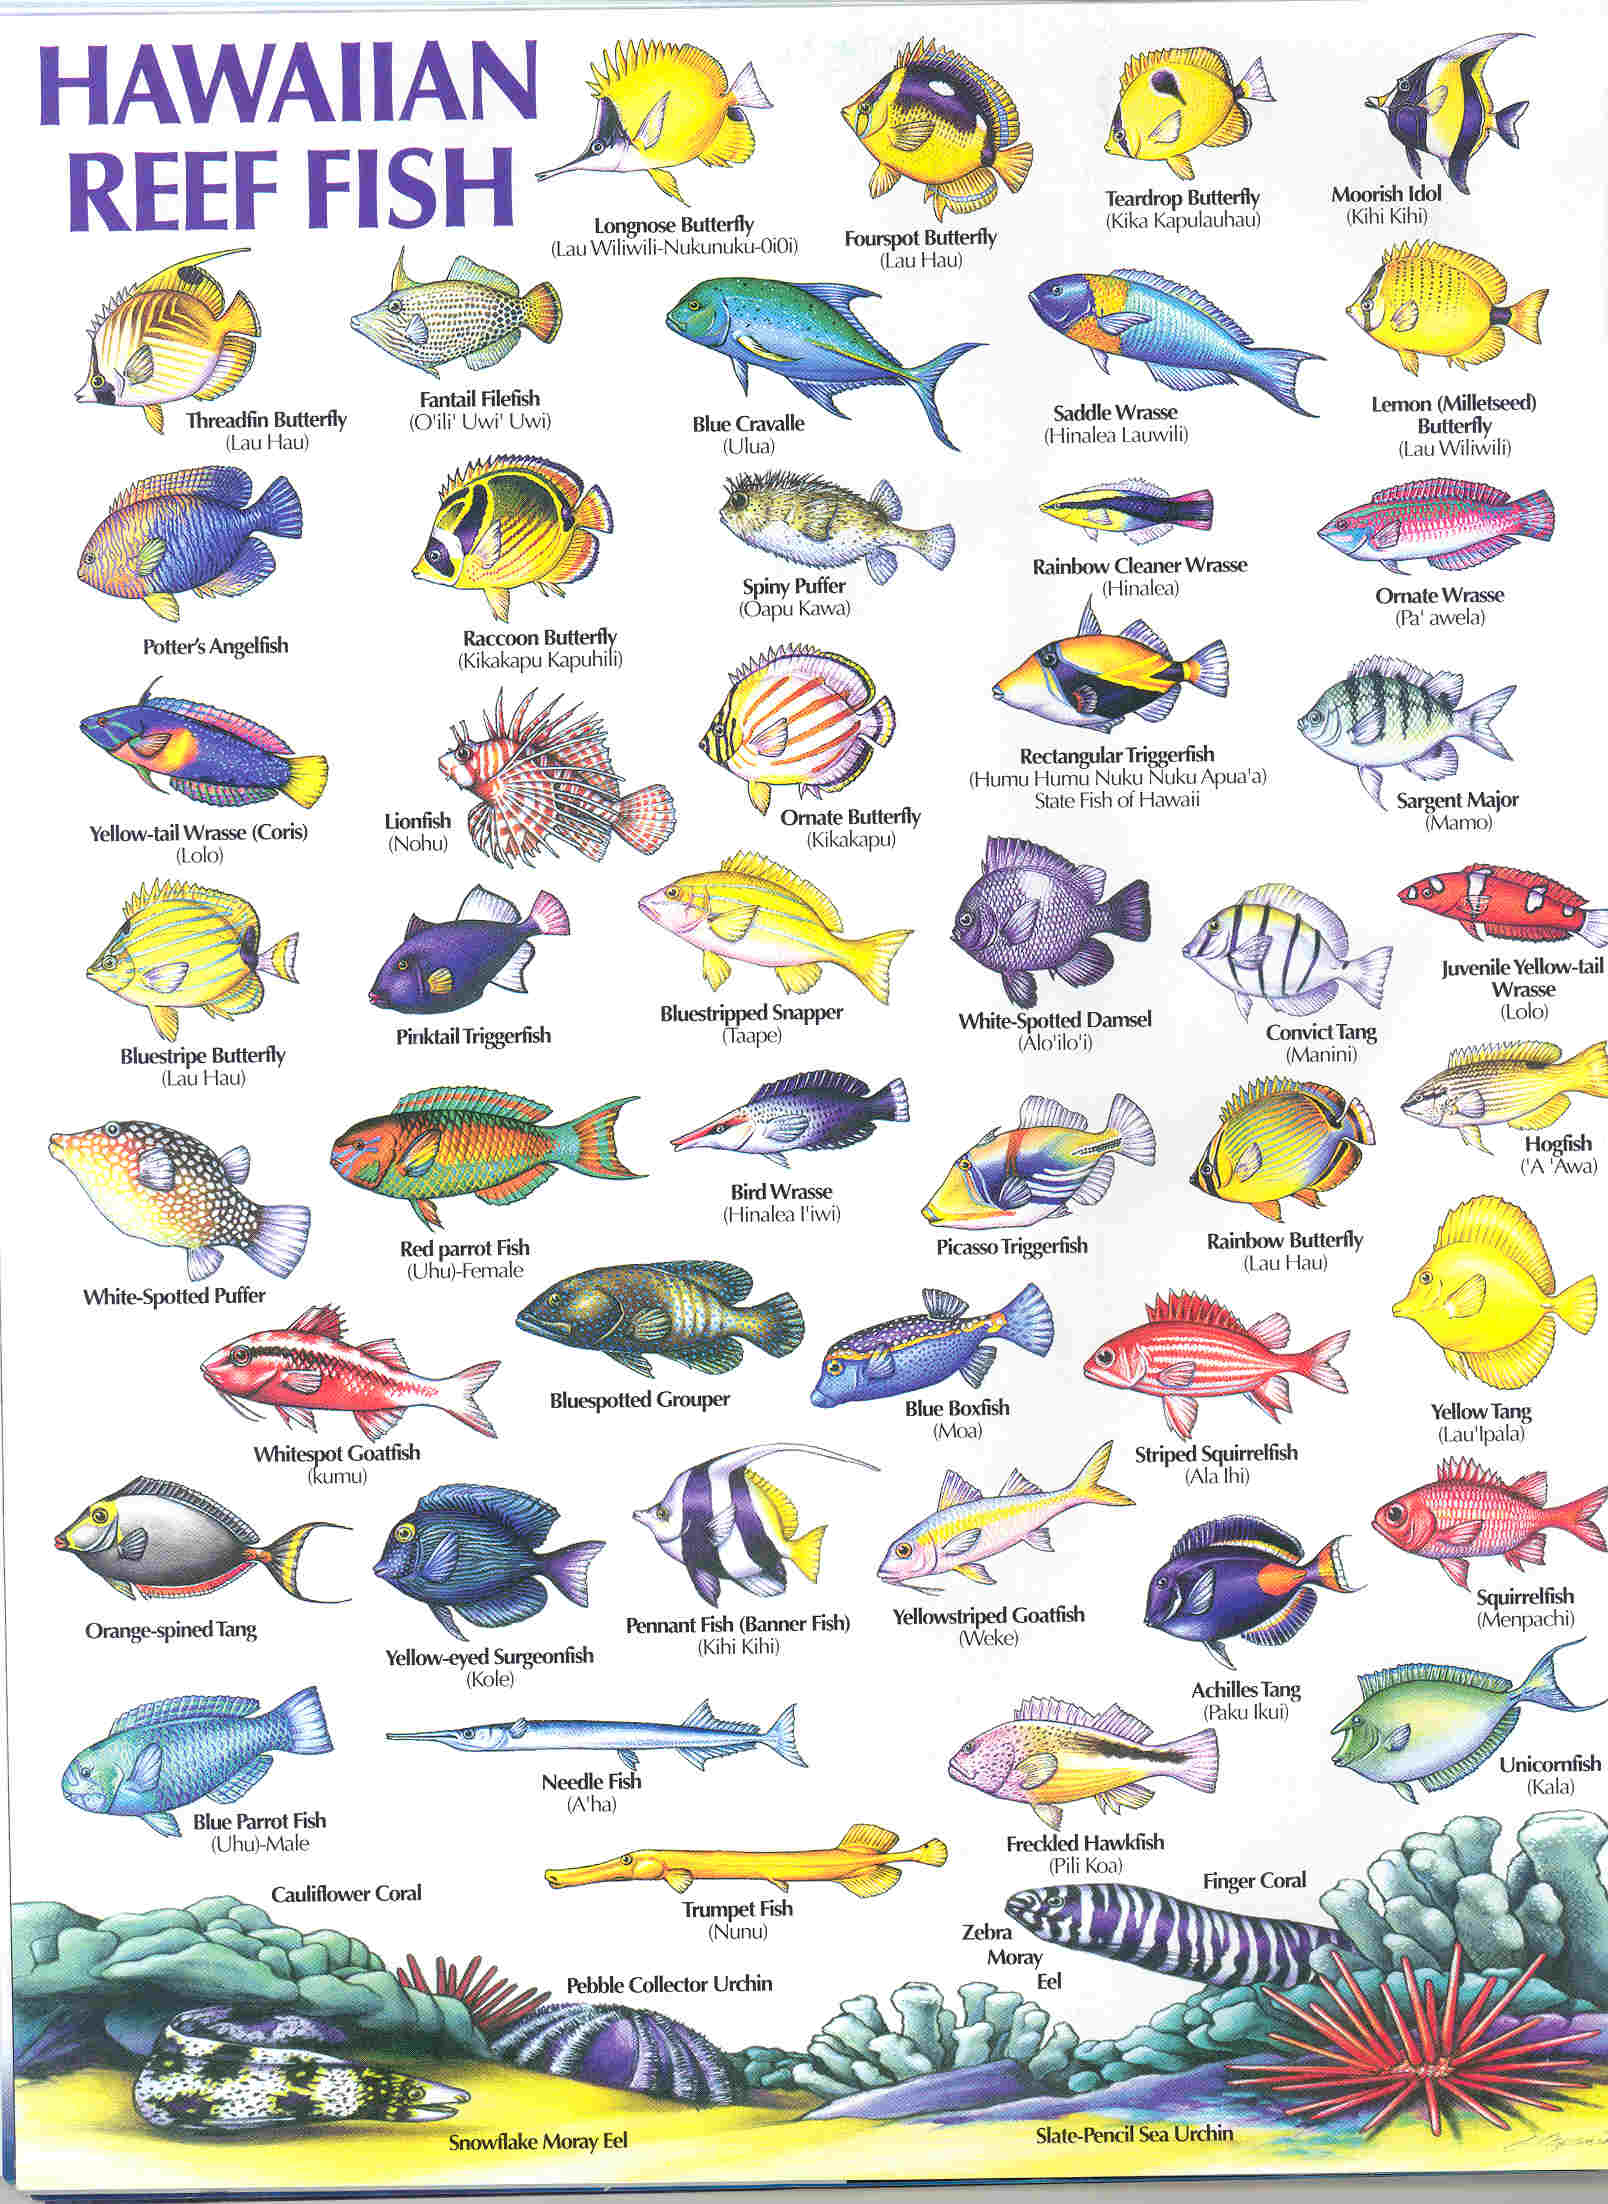 Fish aquarium guide - Name Of Fishes Hawaiian Reef Fish Guide Types Of Fish Hawaiian Names 2017 Fish Tank Maintenance